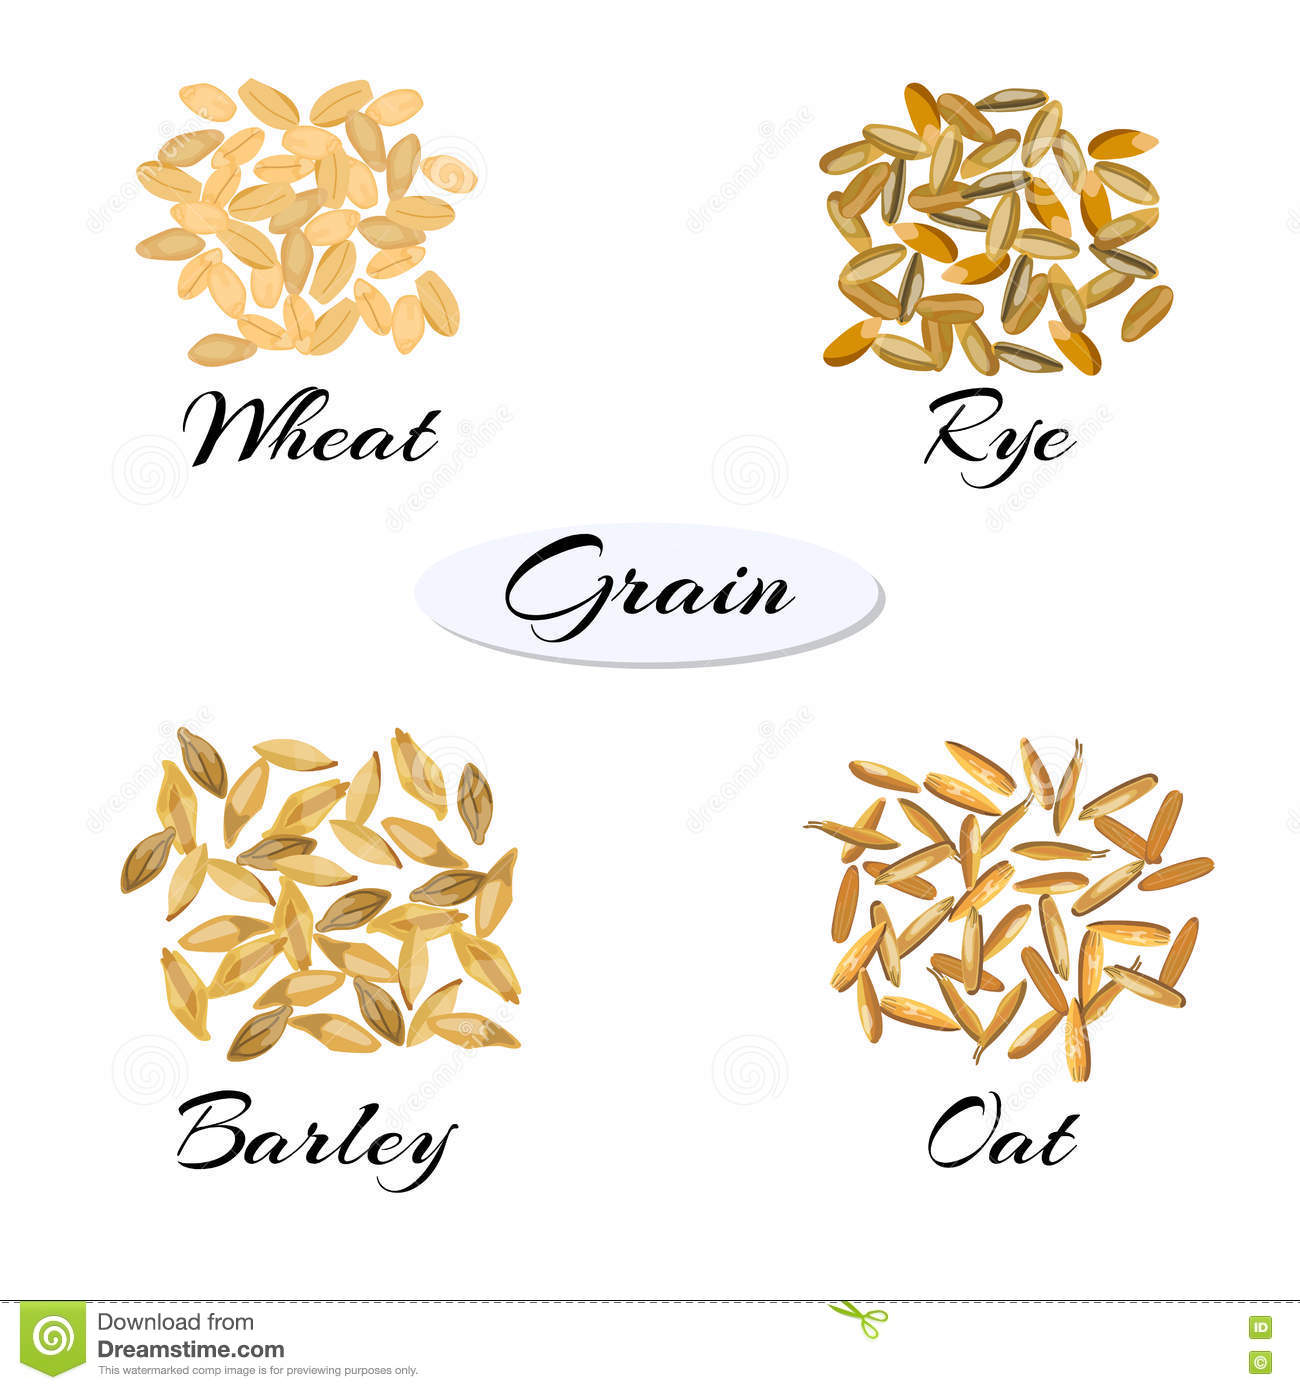 Types Of Grains Cereals Icons